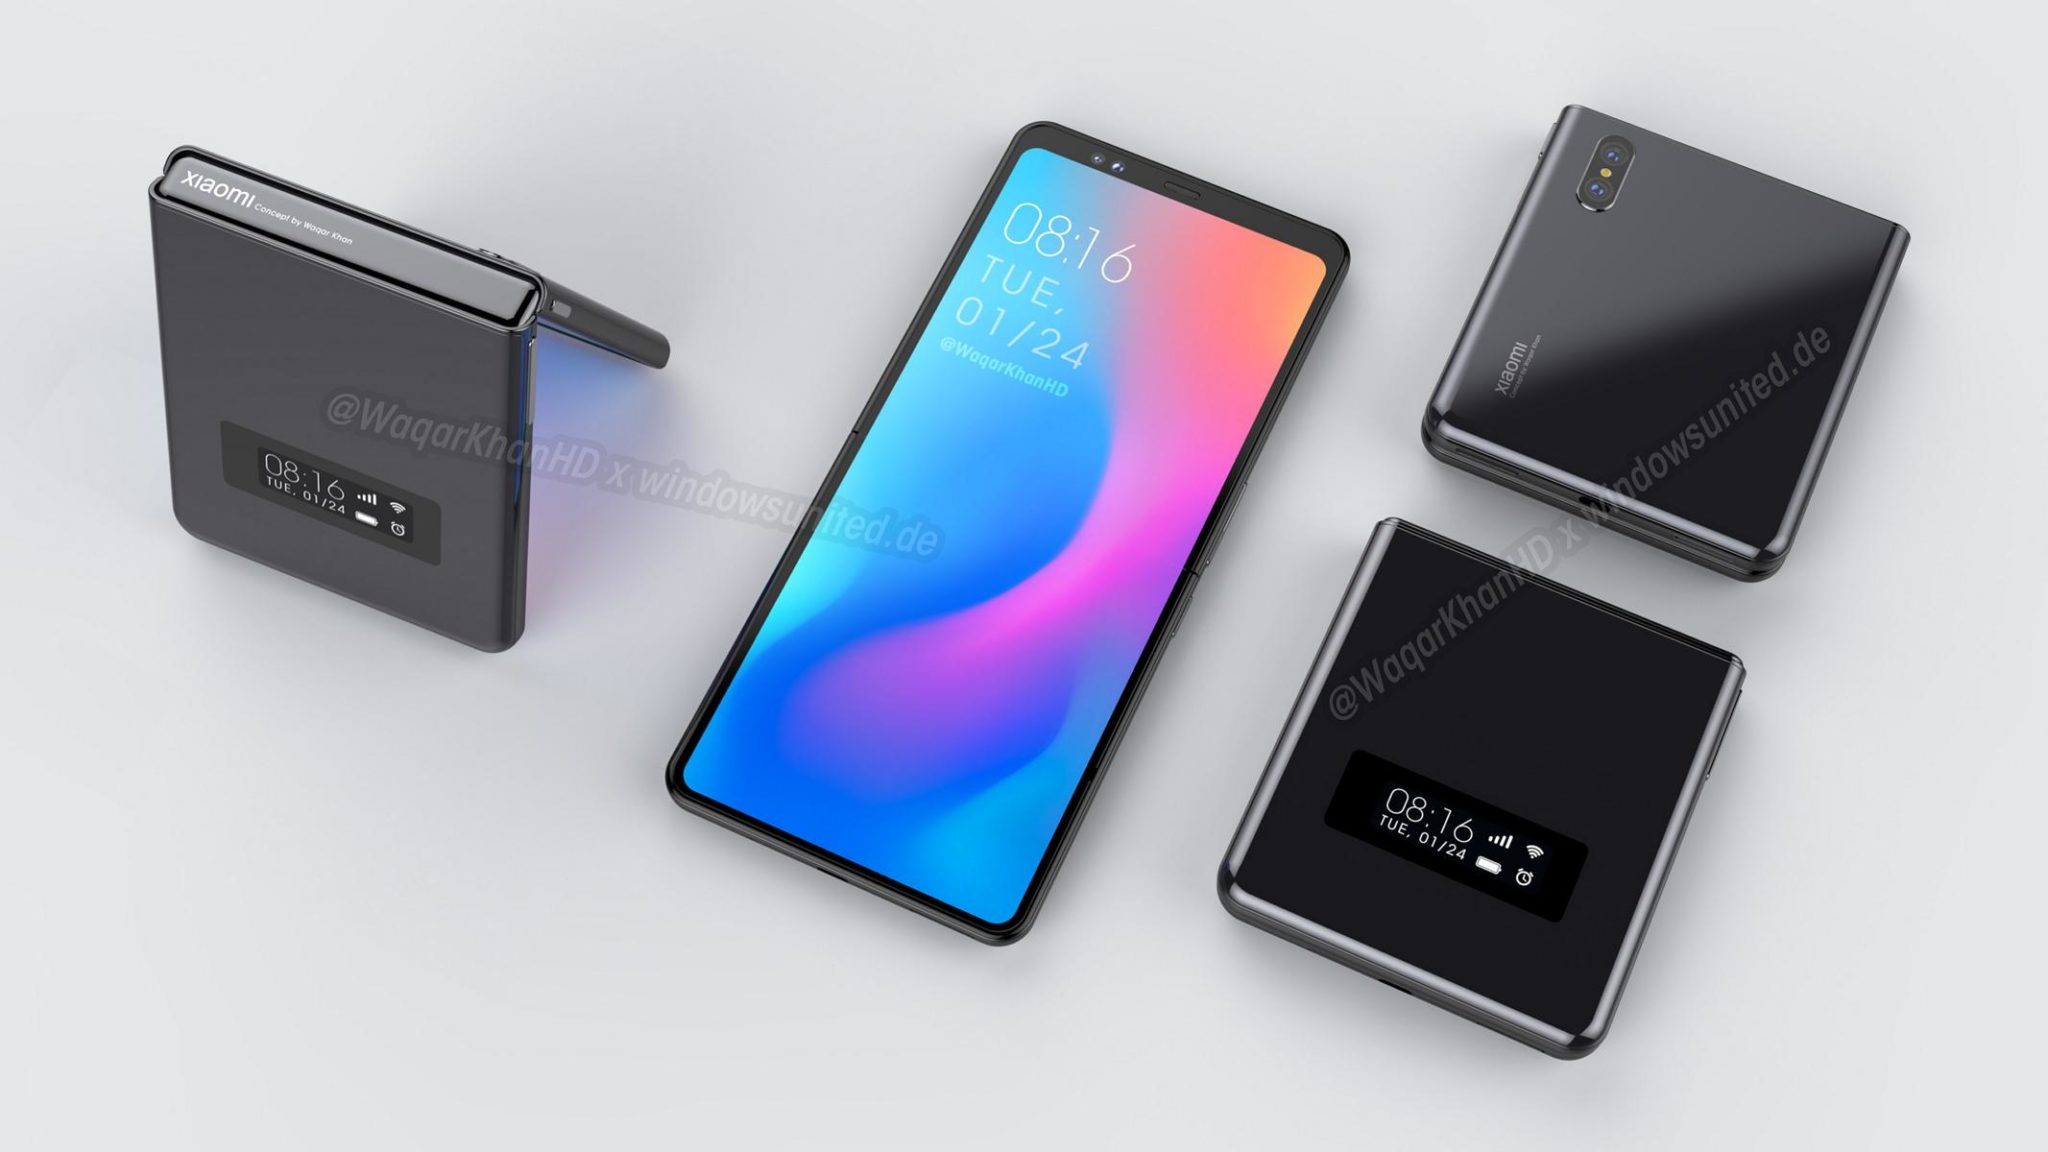 Xiaomi's unannounced clamshell foldable phone comes to life in a new design concept 6